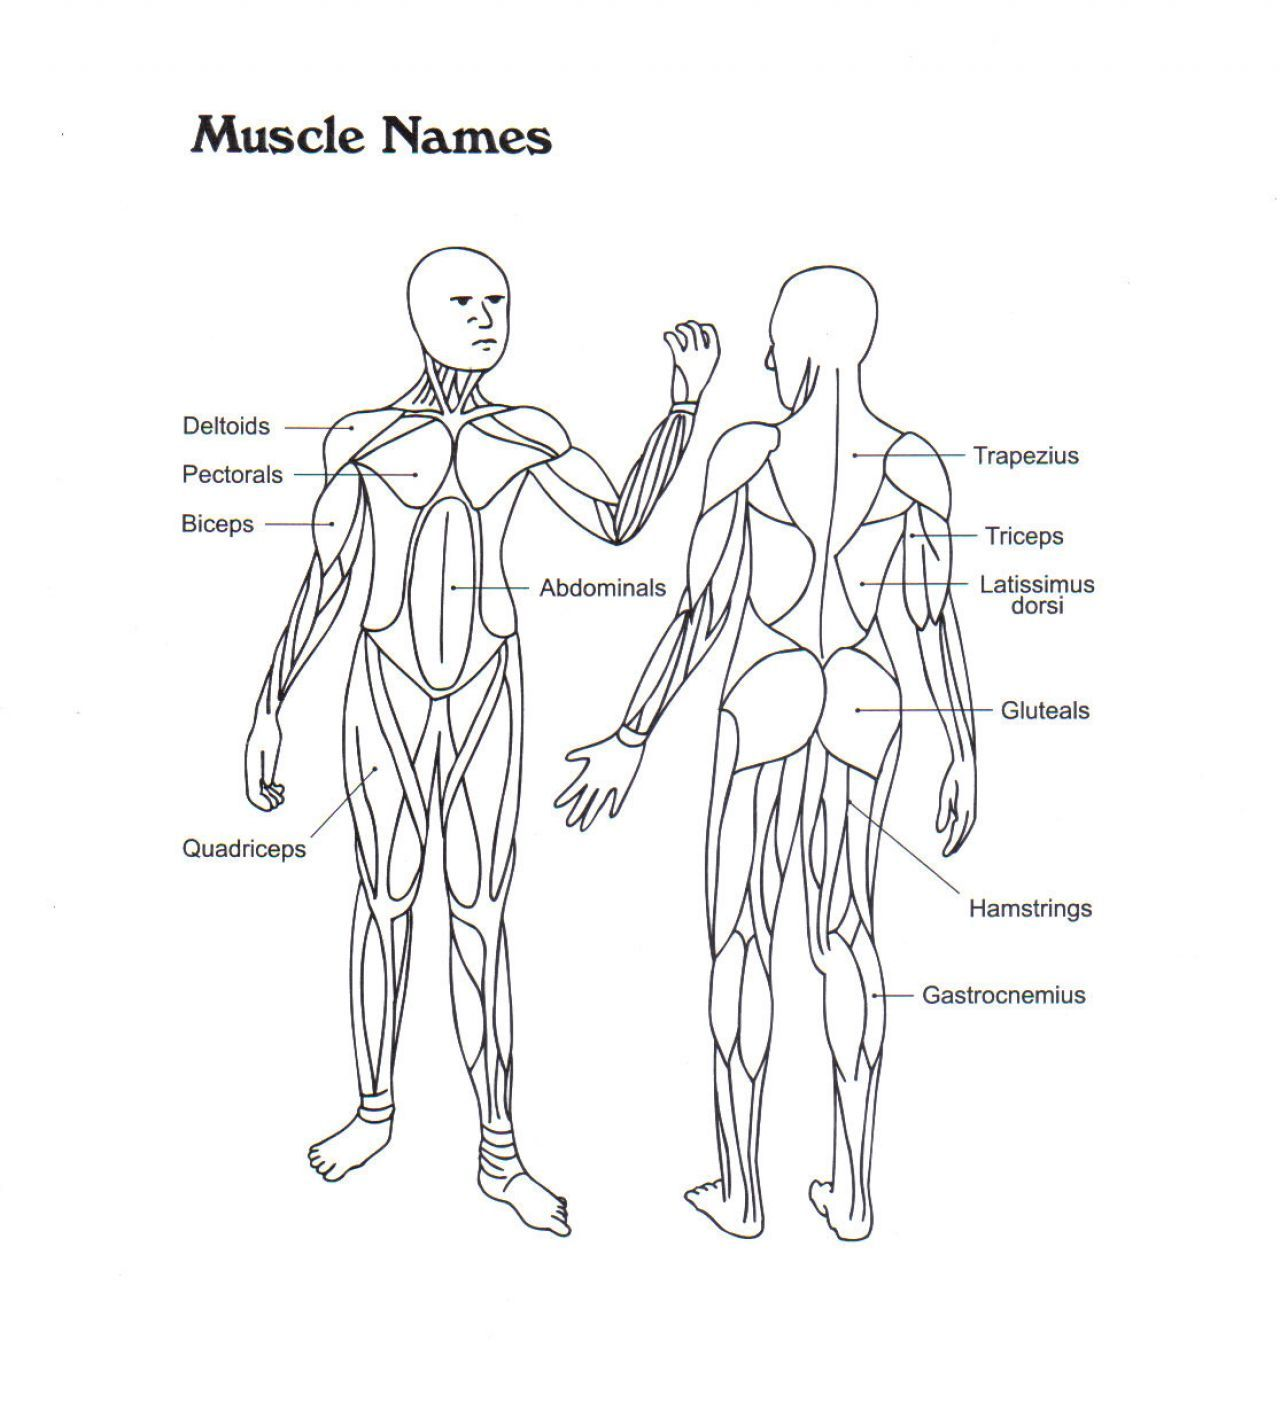 muscular system coloring pages - photo#10